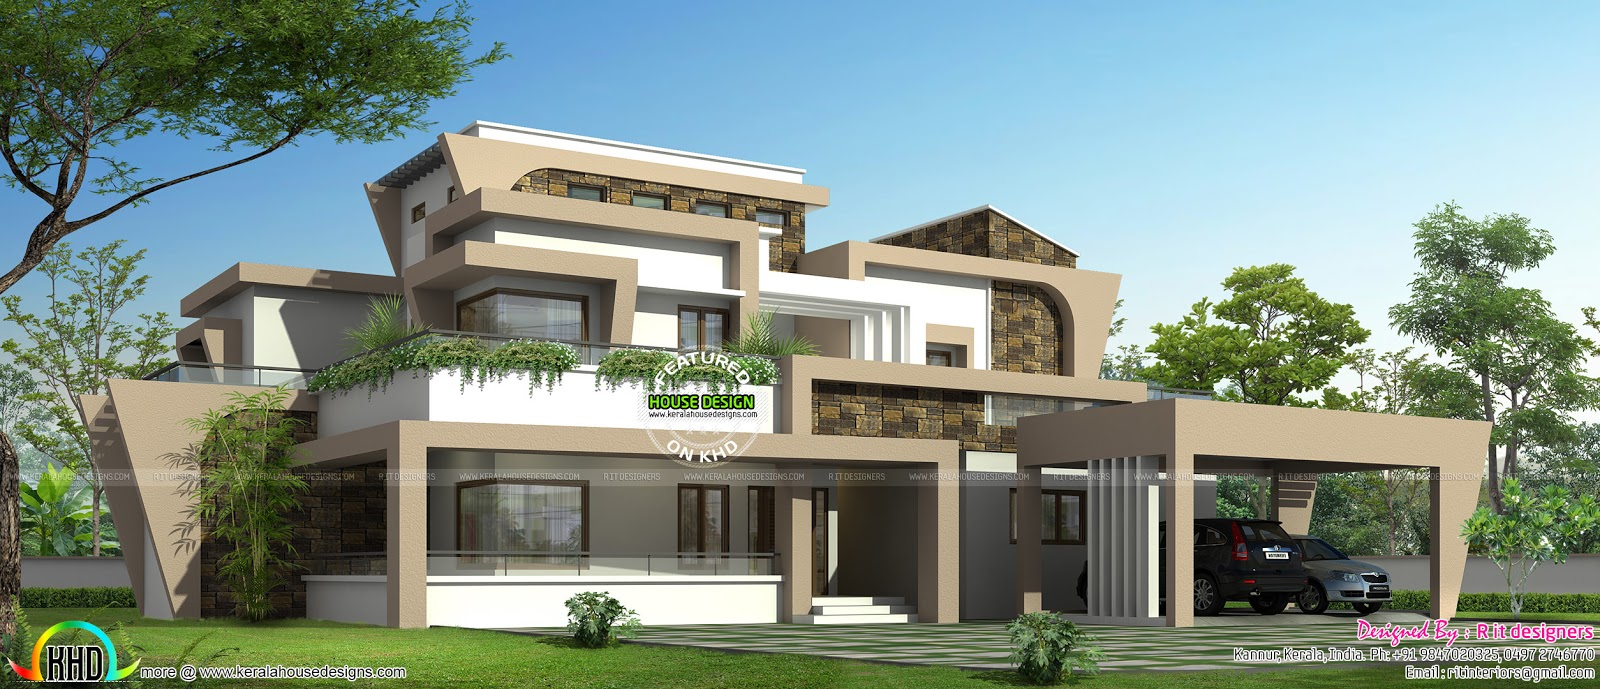 Unique modern home design in kerala kerala home design for Small contemporary house plans in kerala